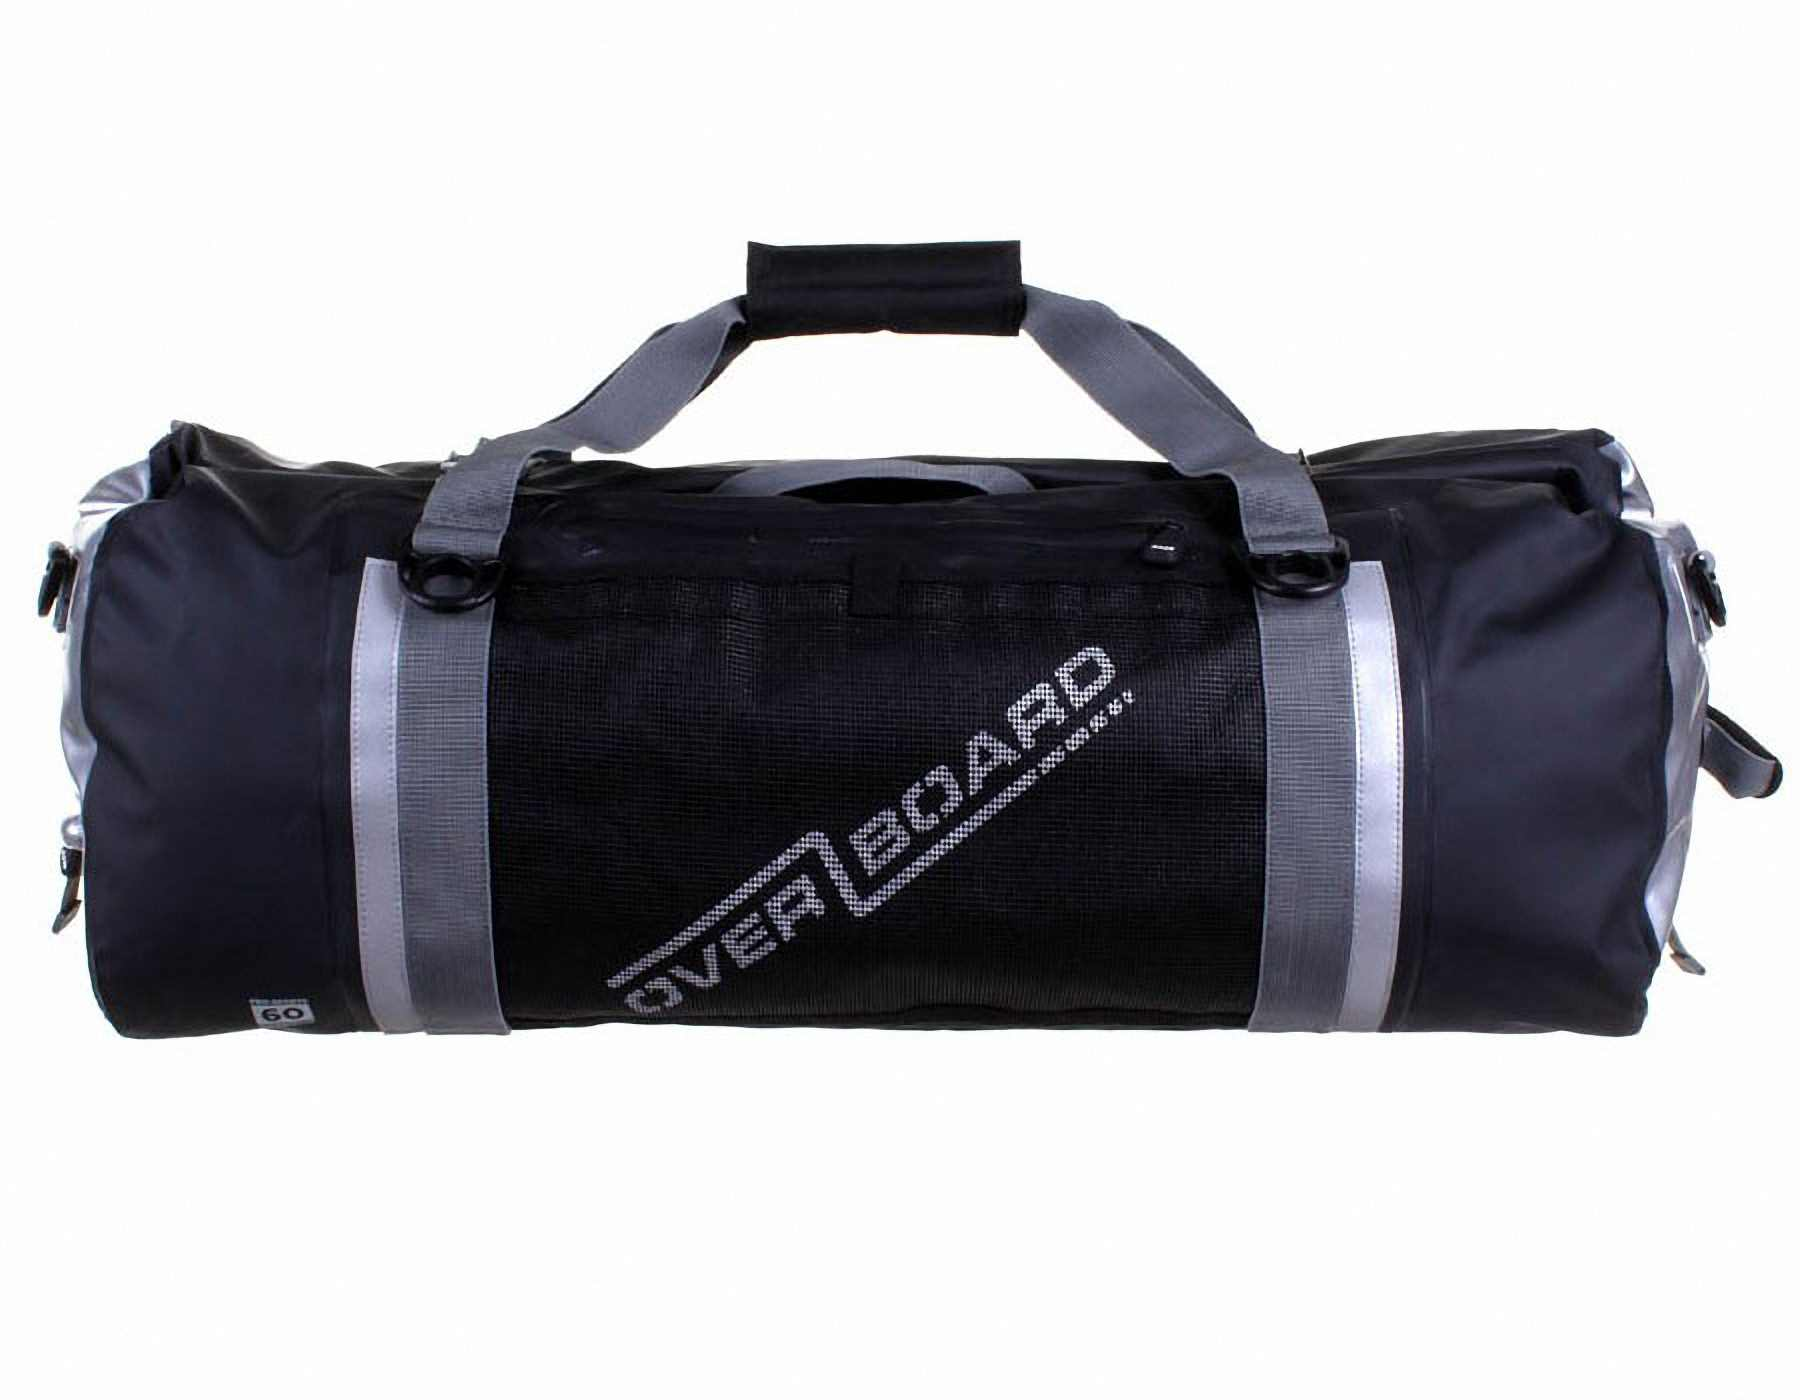 Водонепроницаемая сумка OverBoard OB1154BLK - Pro-Sports Waterproof Duffel Bag - 60 литров.  Фото 2